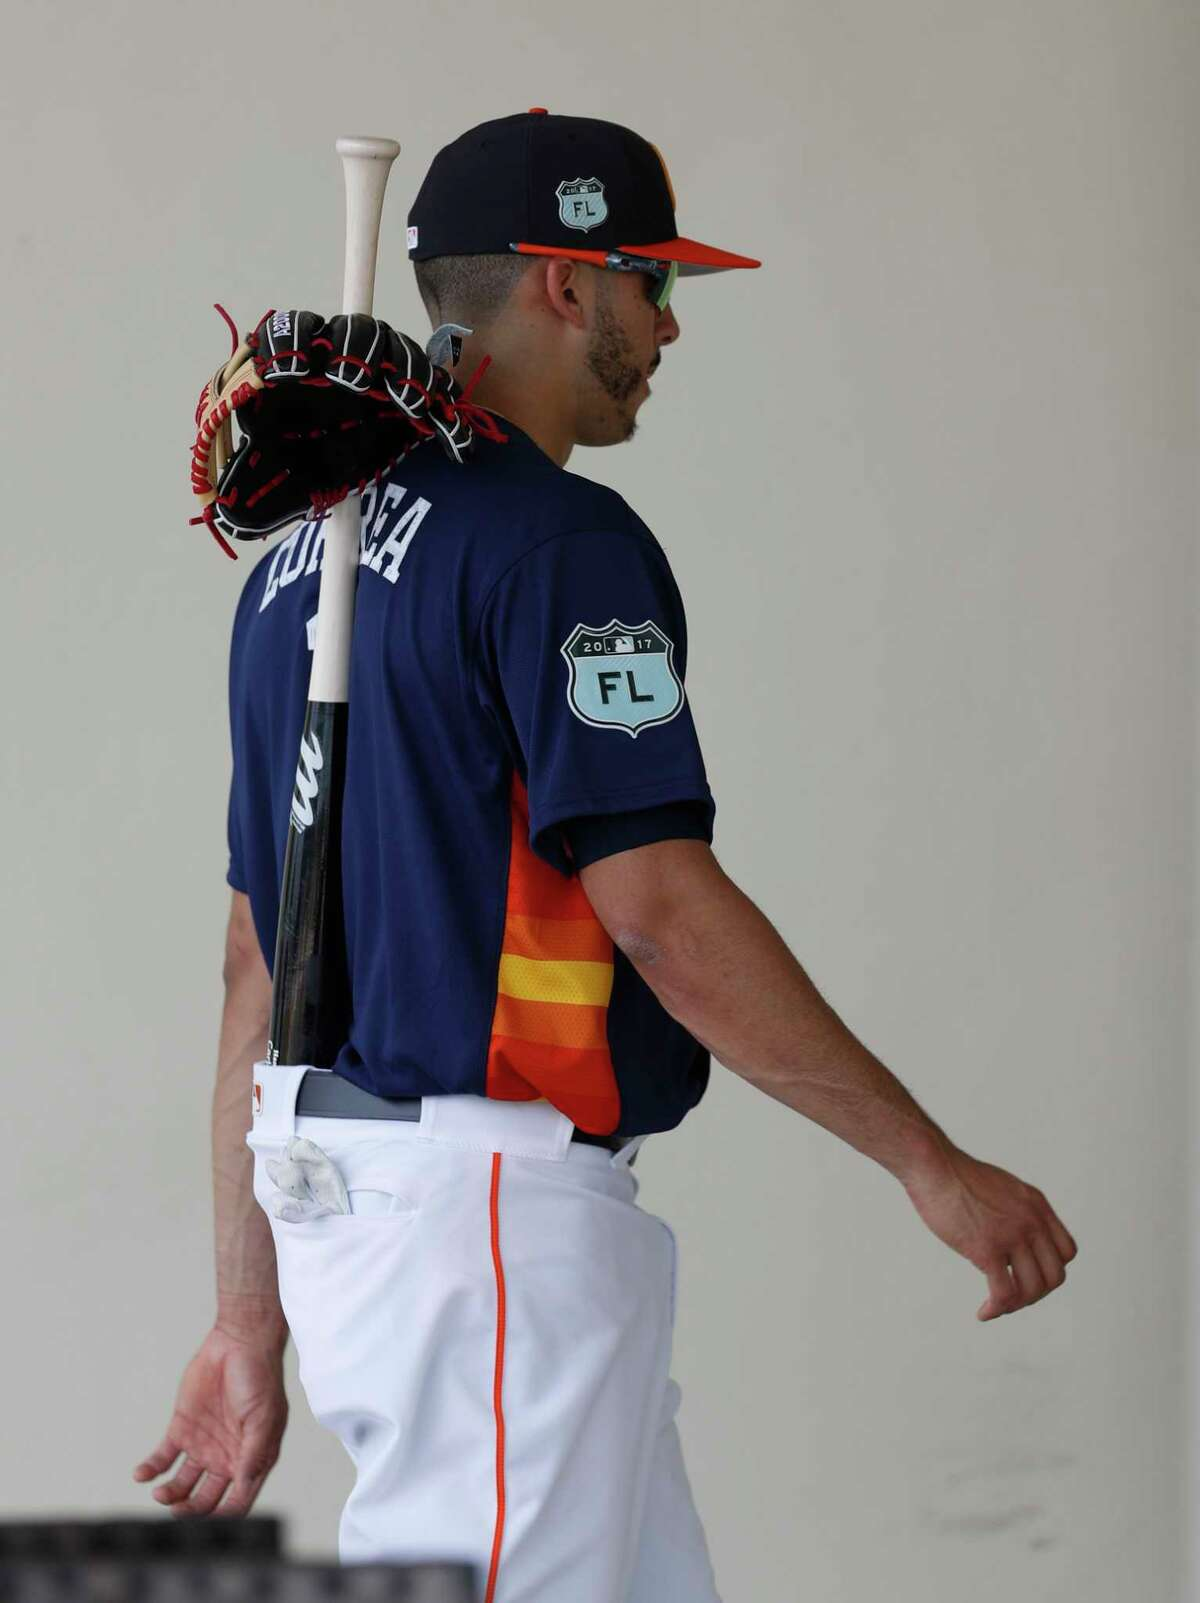 Houston Astros shortstop Carlos Correa (1) walks back to the clubhouse with his bat and glove in his back pocket during spring training at The Ballpark of the Palm Beaches, in West Palm Beach, Florida, Tuesday, February 21, 2017.